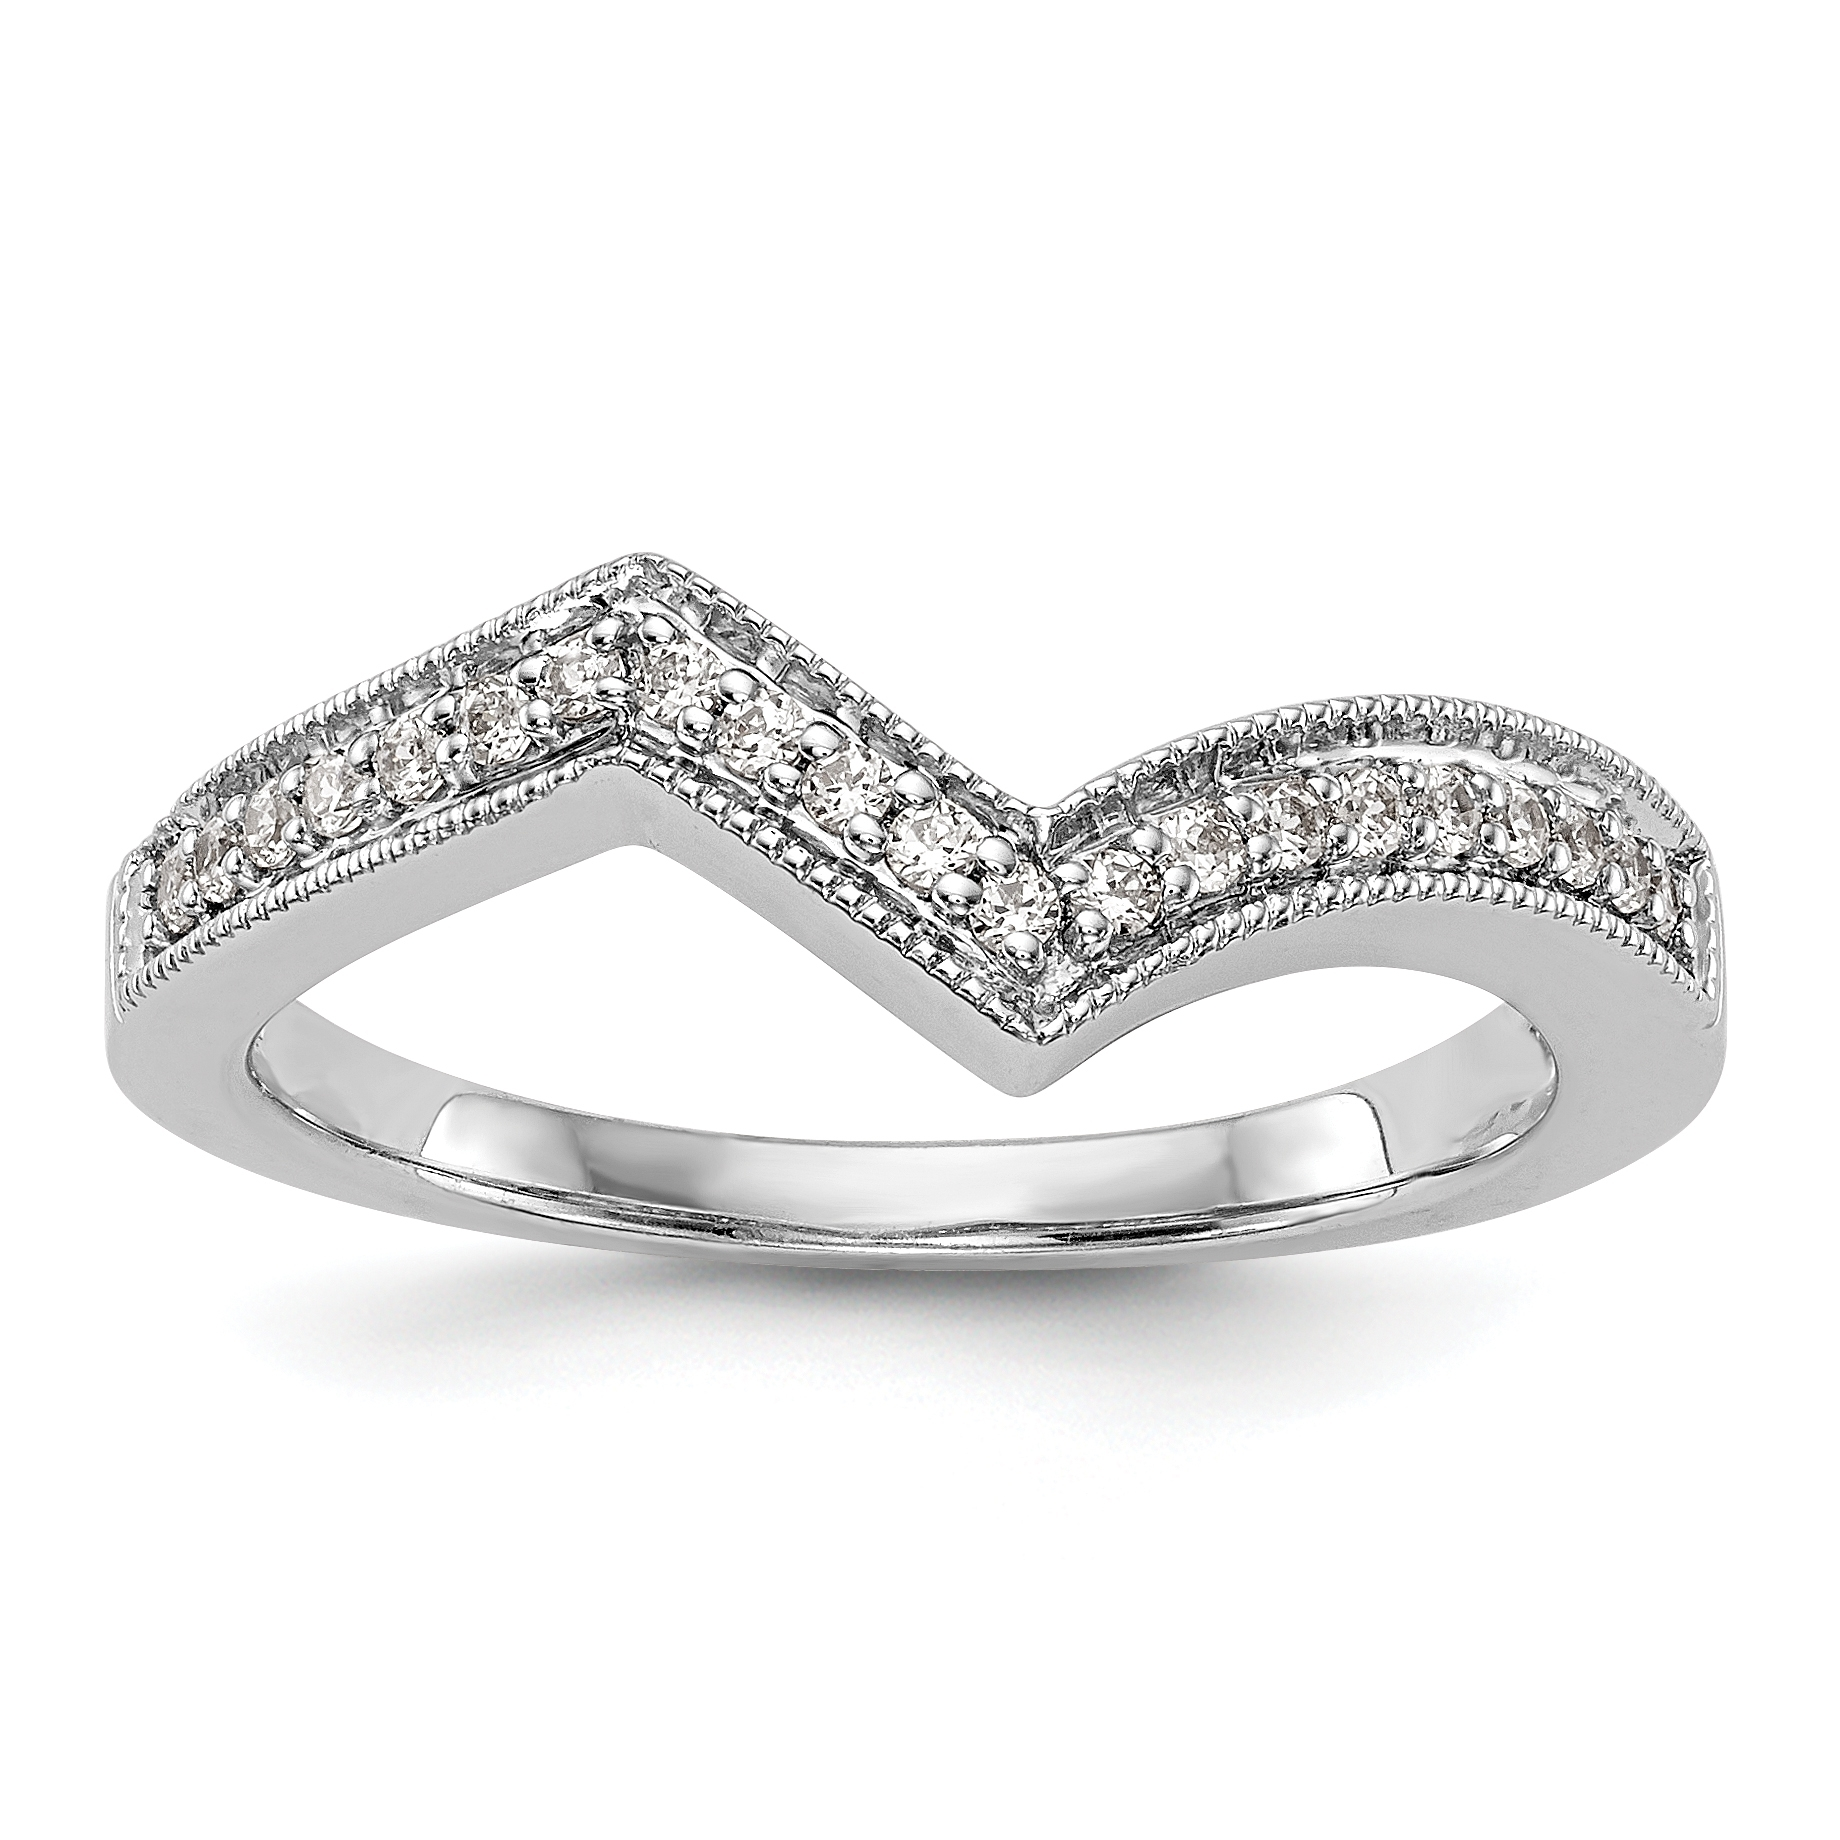 14K White Gold Contour Wedding Band Mounting Intended For Recent Diamond Contour Wedding Bands In 14K White Gold (View 1 of 15)